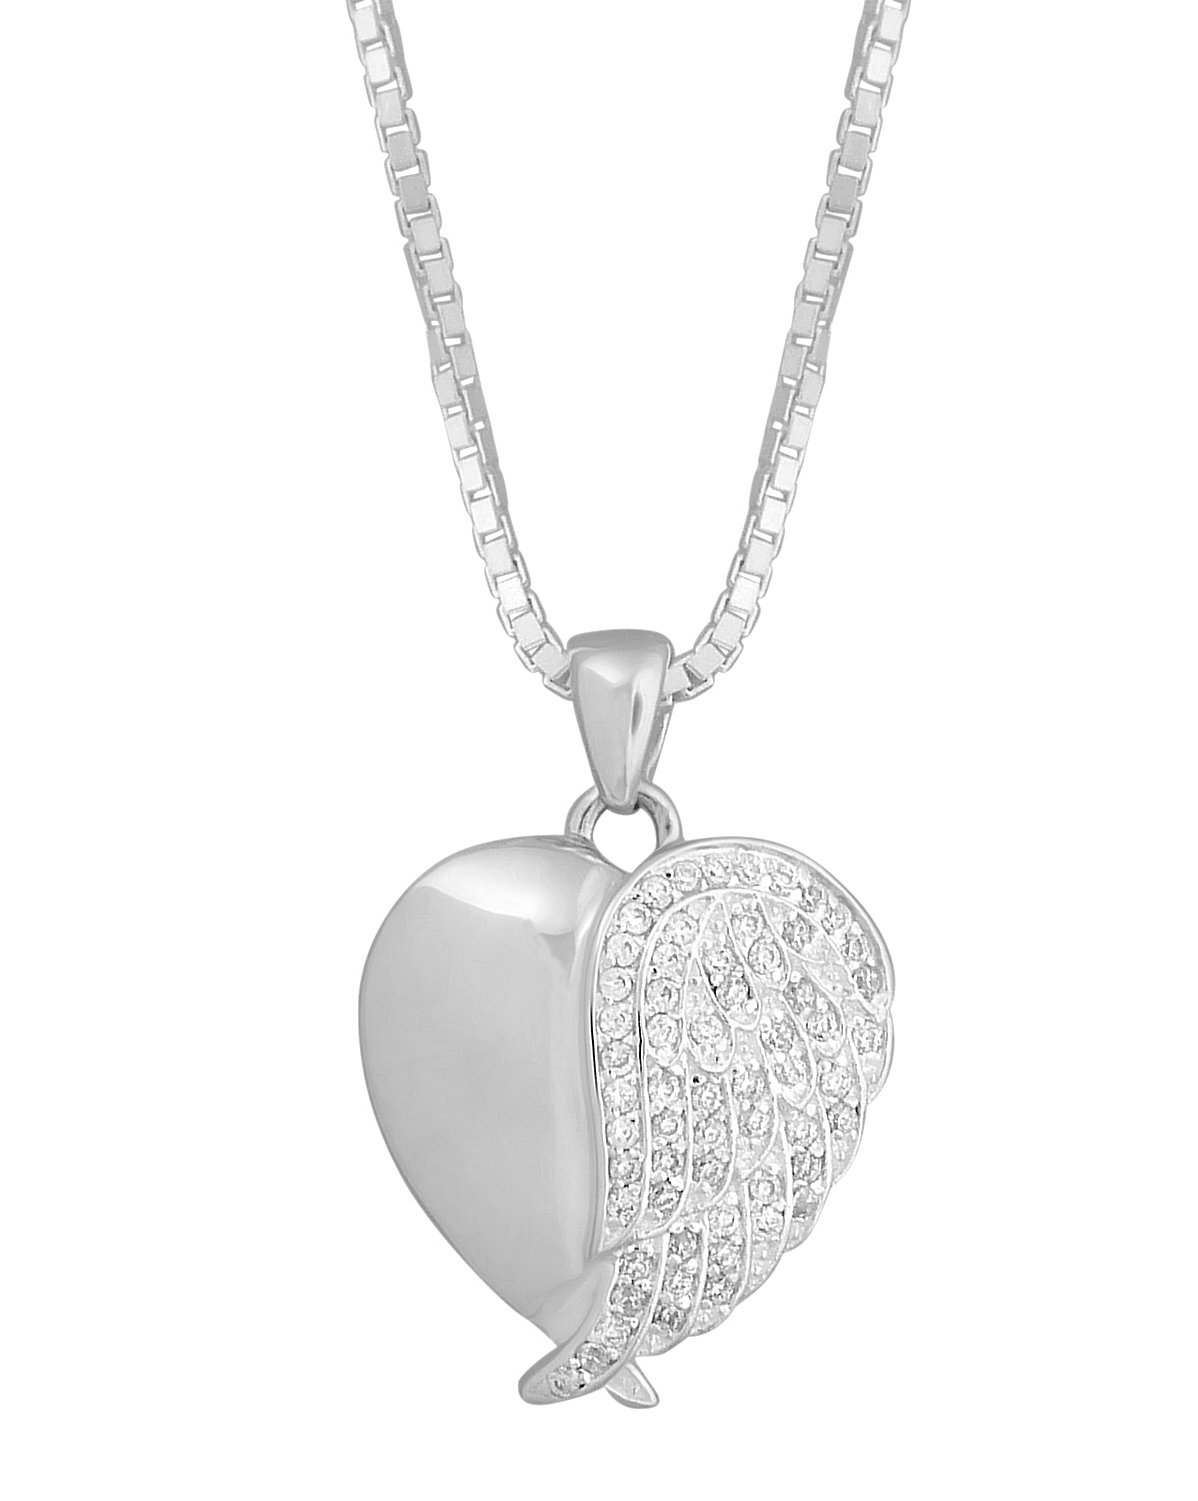 Sterling Silver With White CZ Stones Angel Wing Heart Urn Pendant 18 Inch Sterling Silver Box Chain by Forever Urn Jewelry